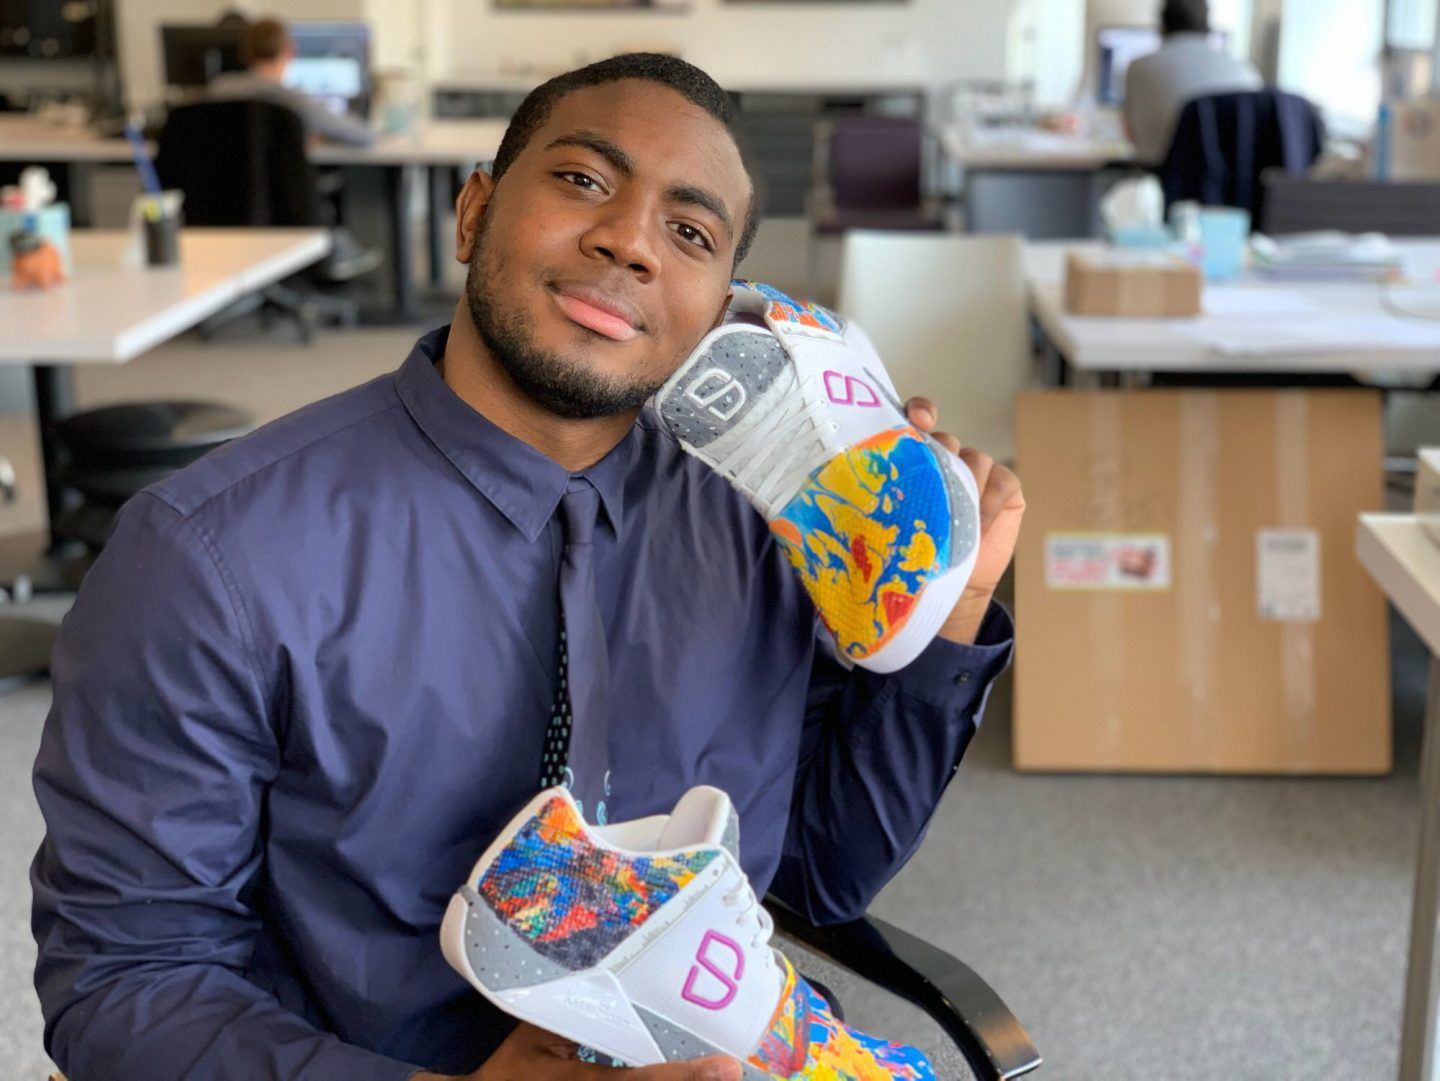 Jahkill Rashad displaying the sneaker he designed for Brooklyn Nets star, Spencer Dinwiddie.